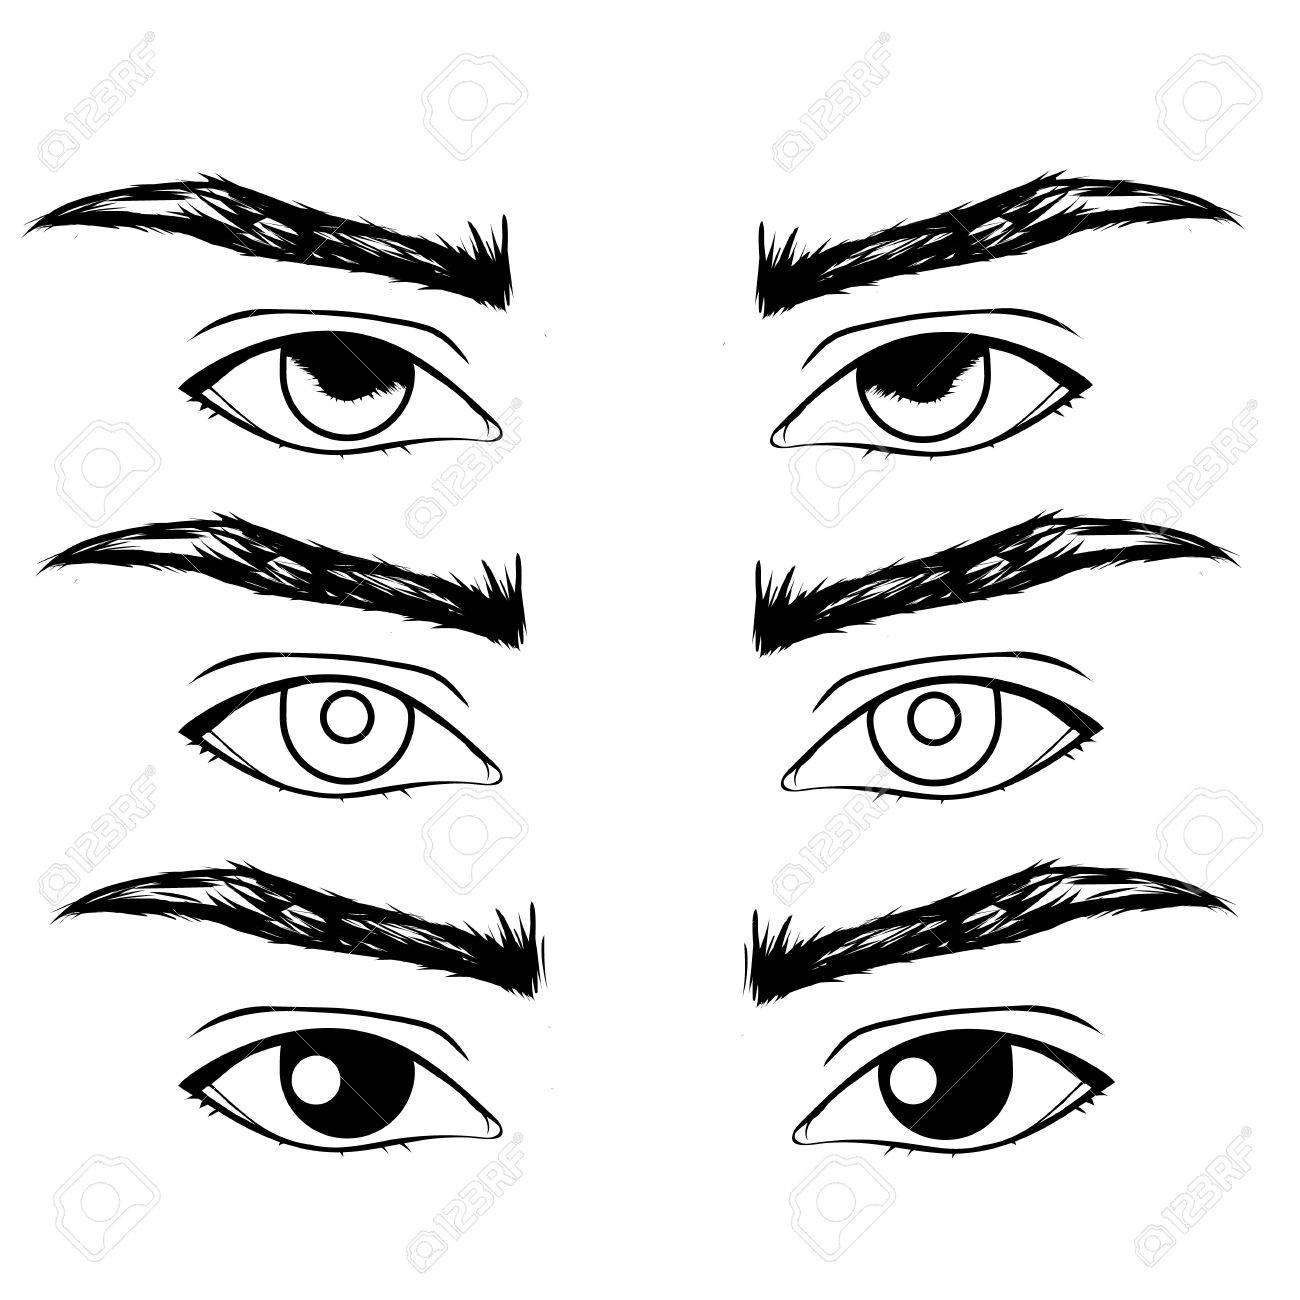 1300x1300 Hand Drawn Men's Eyes Royalty Free Cliparts, Vectors, And Stock